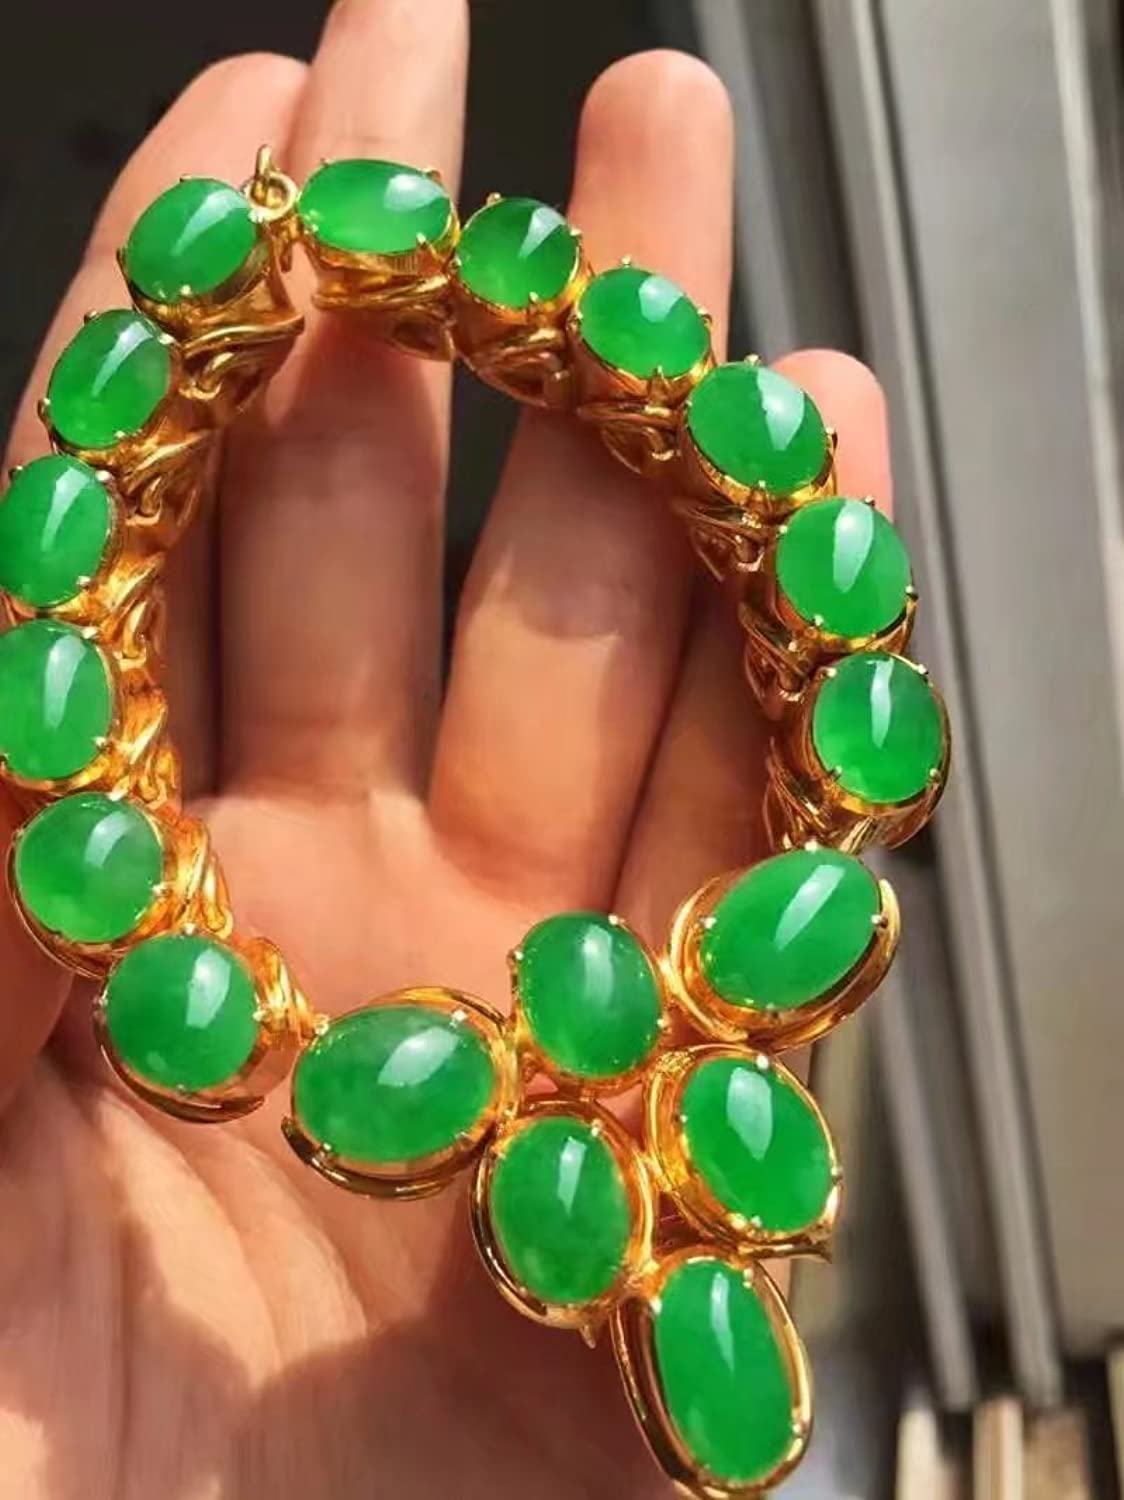 Myanmar Jade Old r Jade Ring Women Girls Natural ice Kinds Goods Bracelets Necklace Pendant Earrings Sun Green